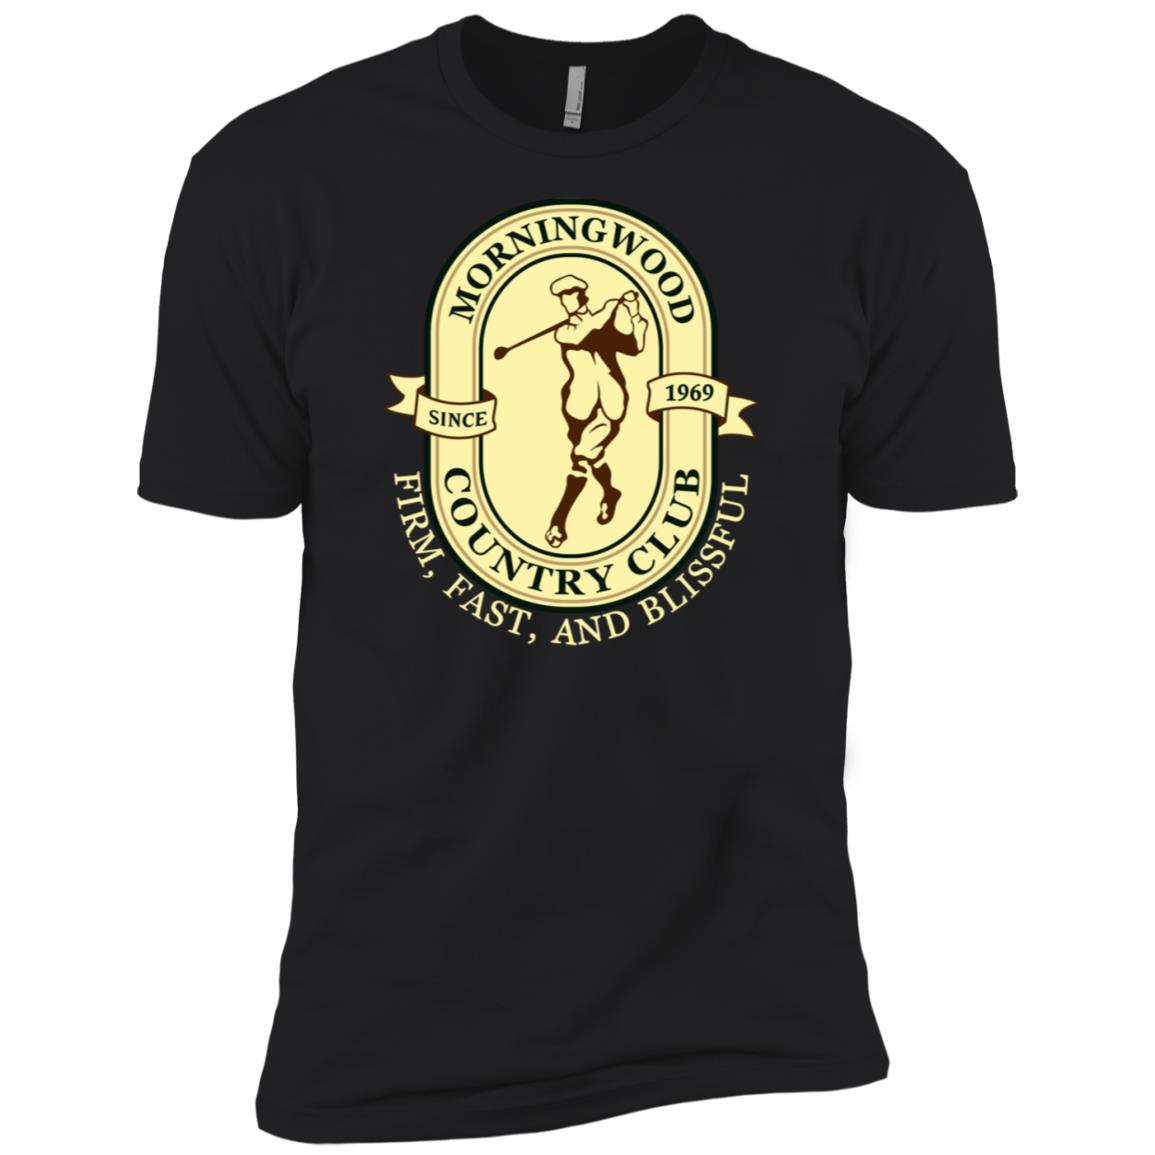 Morningwood C.C. Premium Tee